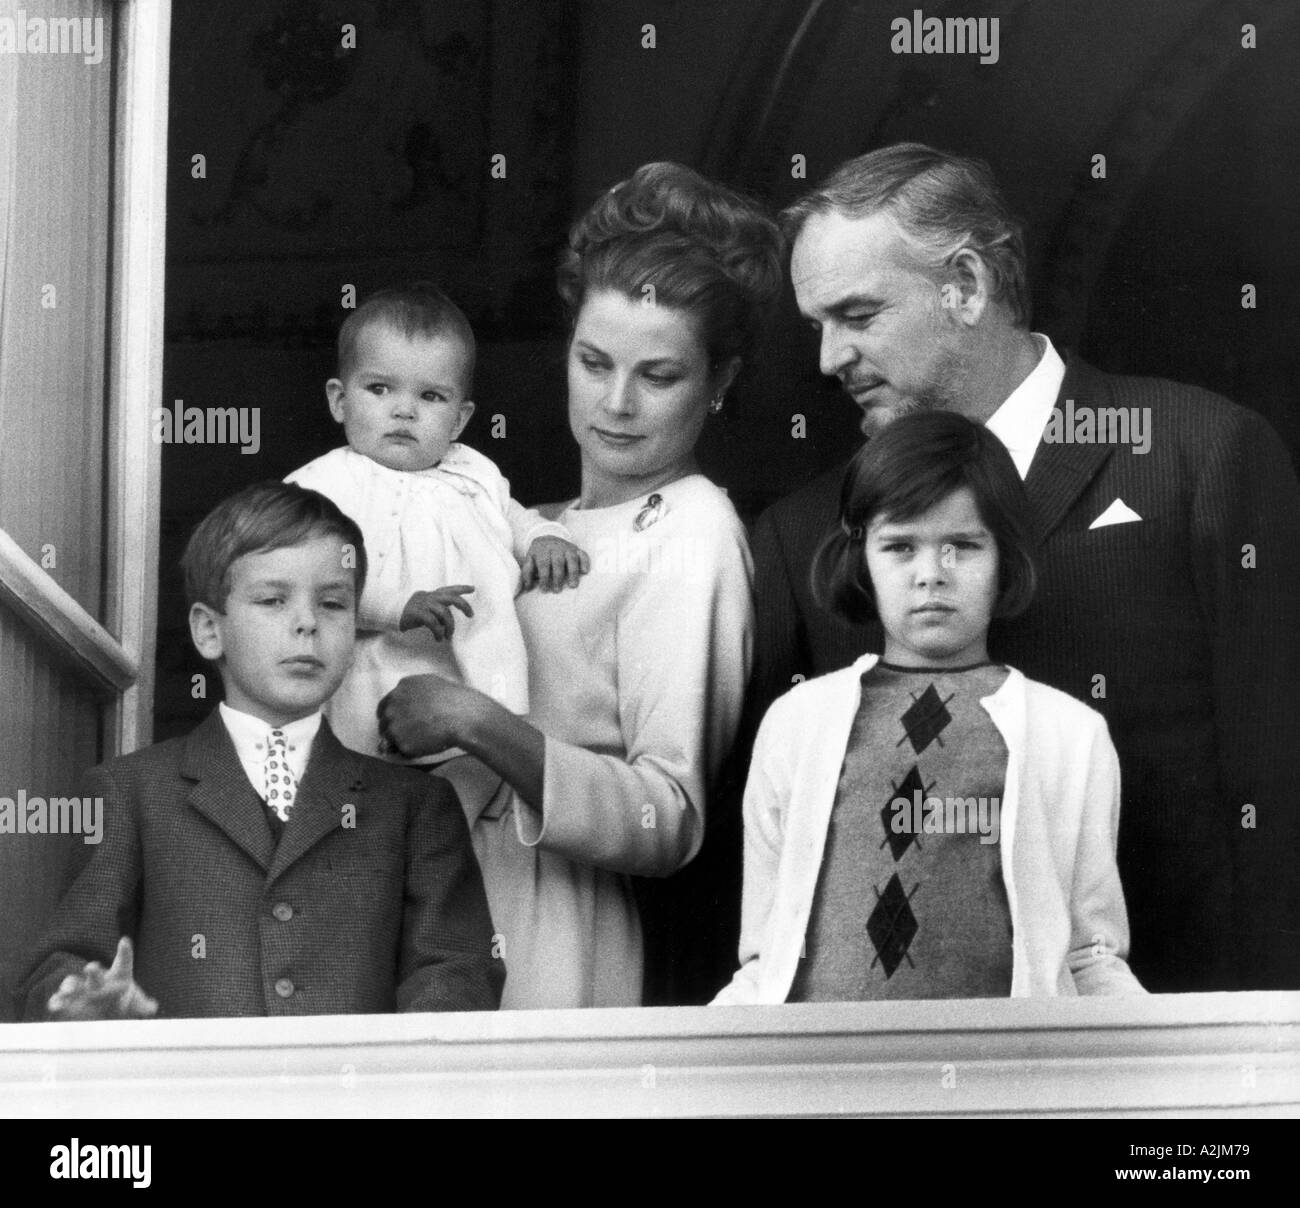 GRACE KEKLLY With Prince Rainier III And Their Children At The Balcony Of Monaco Palace